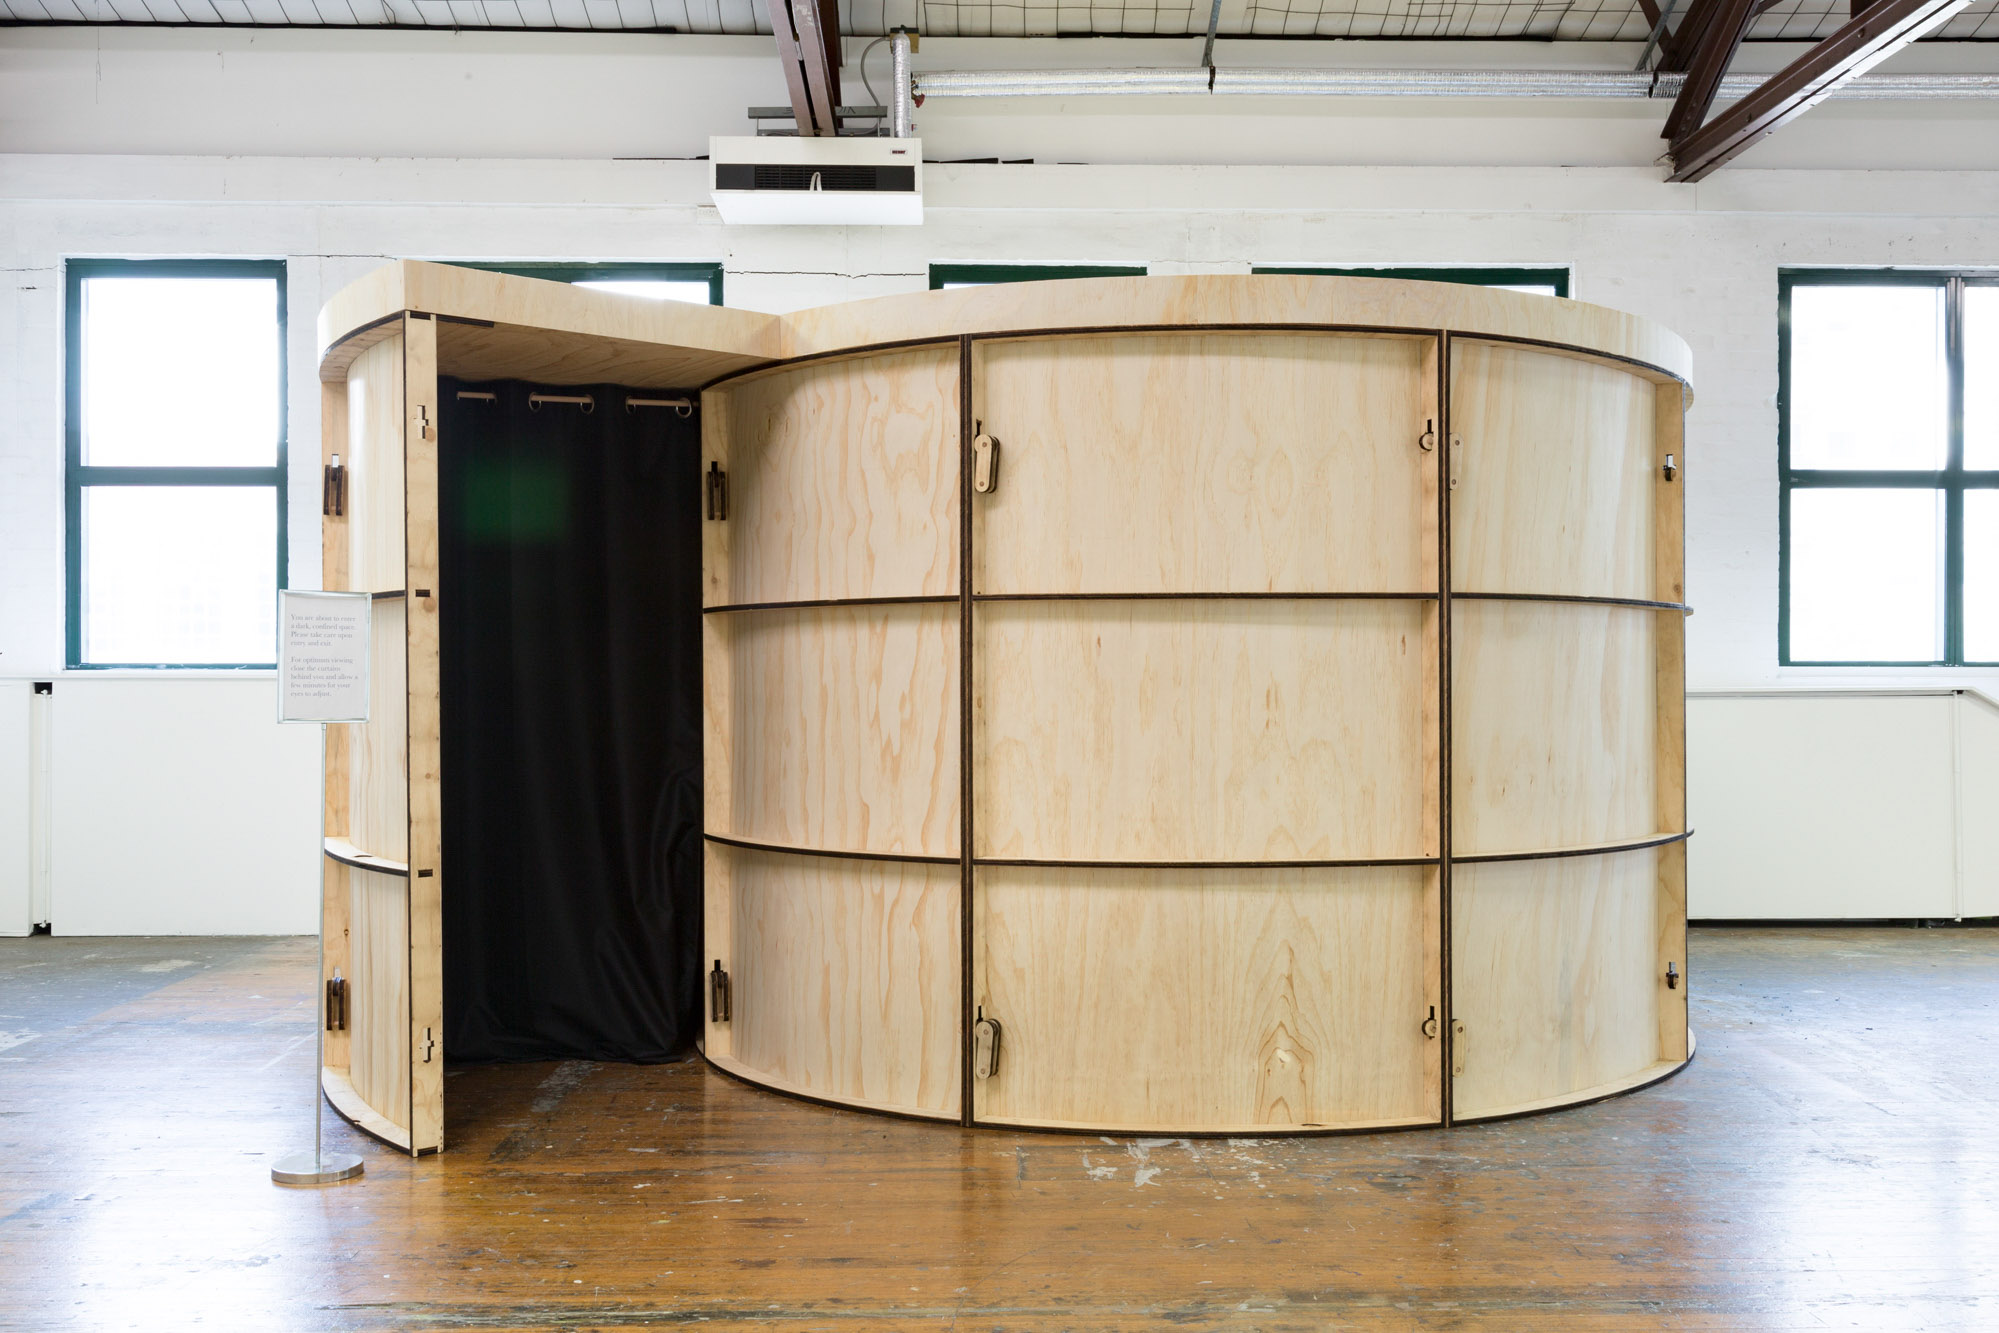 Camera obscura, Boon Wurrung and Wurundjeri, 2017. Plywood, nails, screws, fabric, cardboard, dimensions variable.